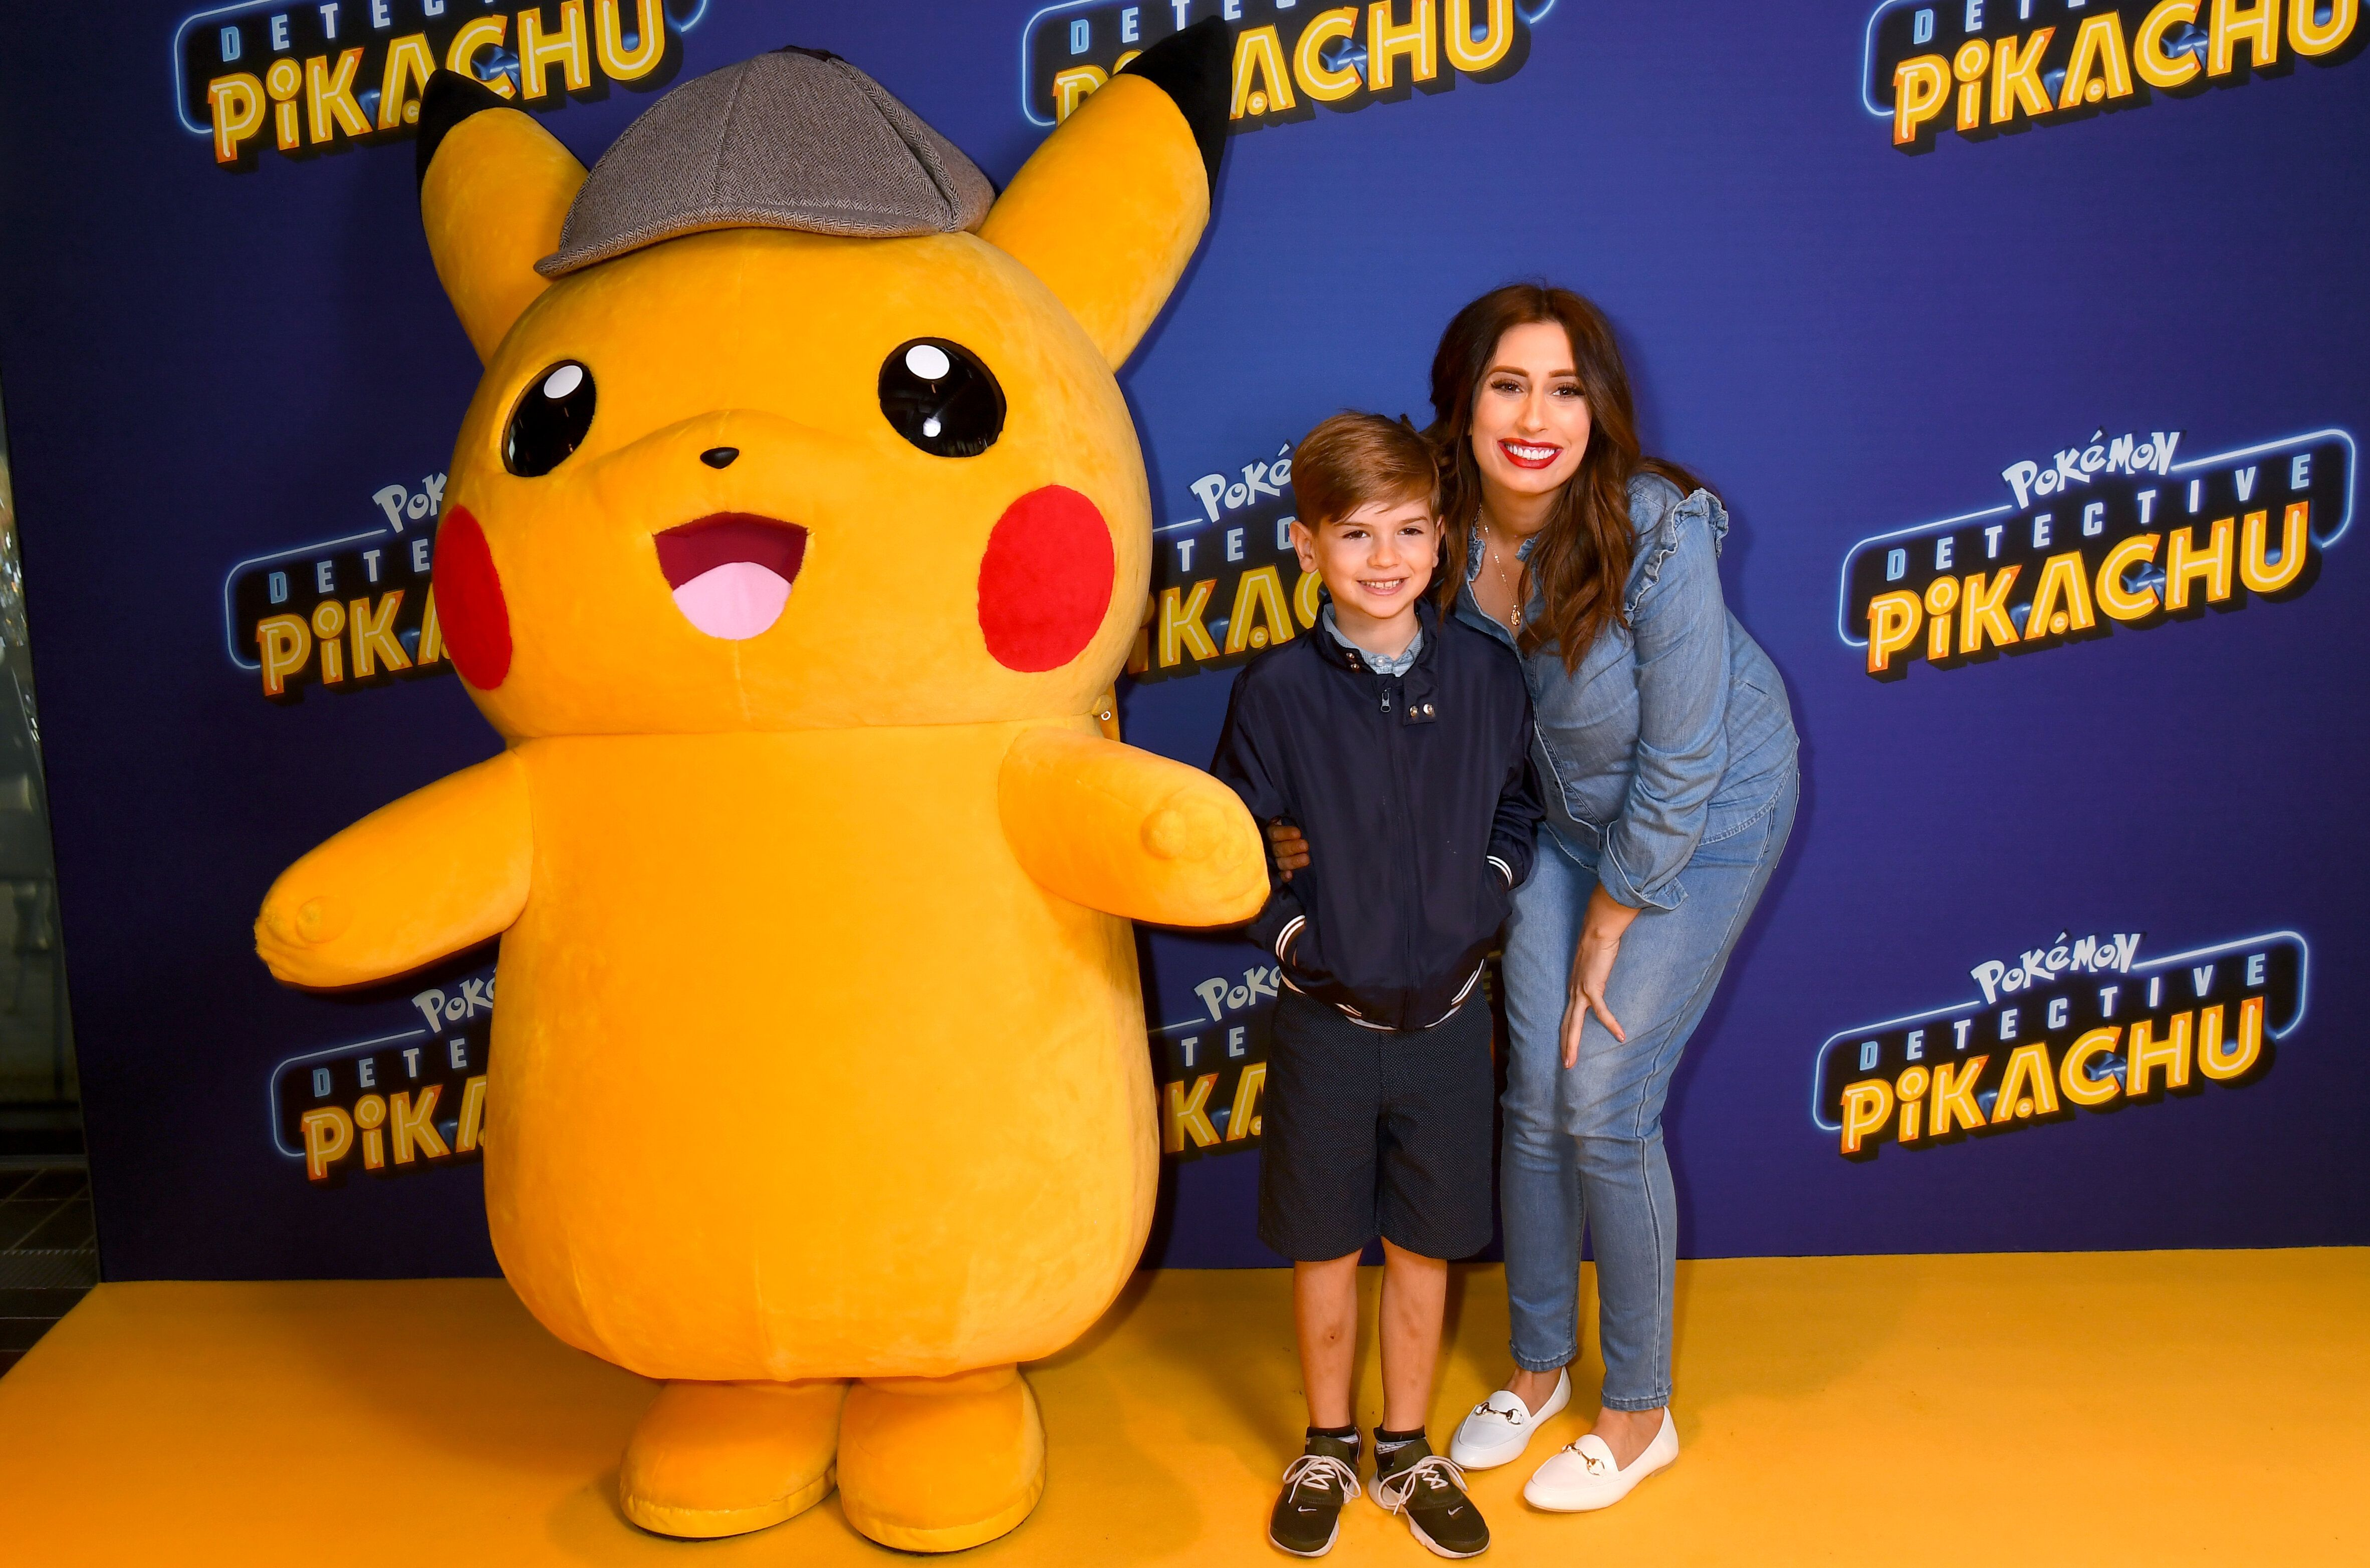 Stacey Solomon and son Leighton attends Fun In The Foyer Screening Of Detective Pikachu at BFI Southbank on April 27, 2019 in London, England. (Photo by Dave J Hogan/Getty Images for Warner Bros.)